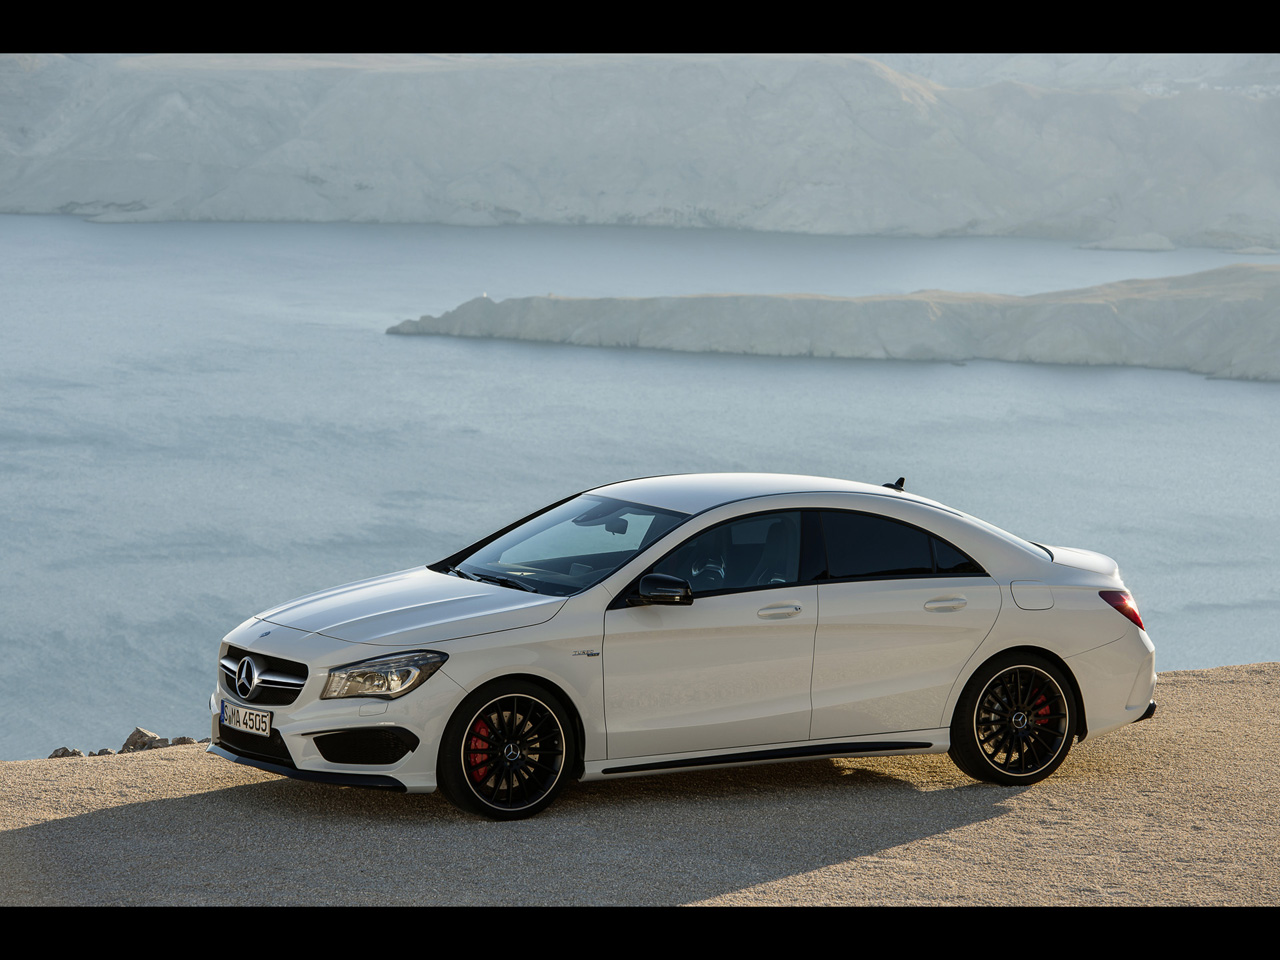 All Types 2013 mercedes cla : Modern Cars: Mercedes-Benz CLA 45 AMG 2013